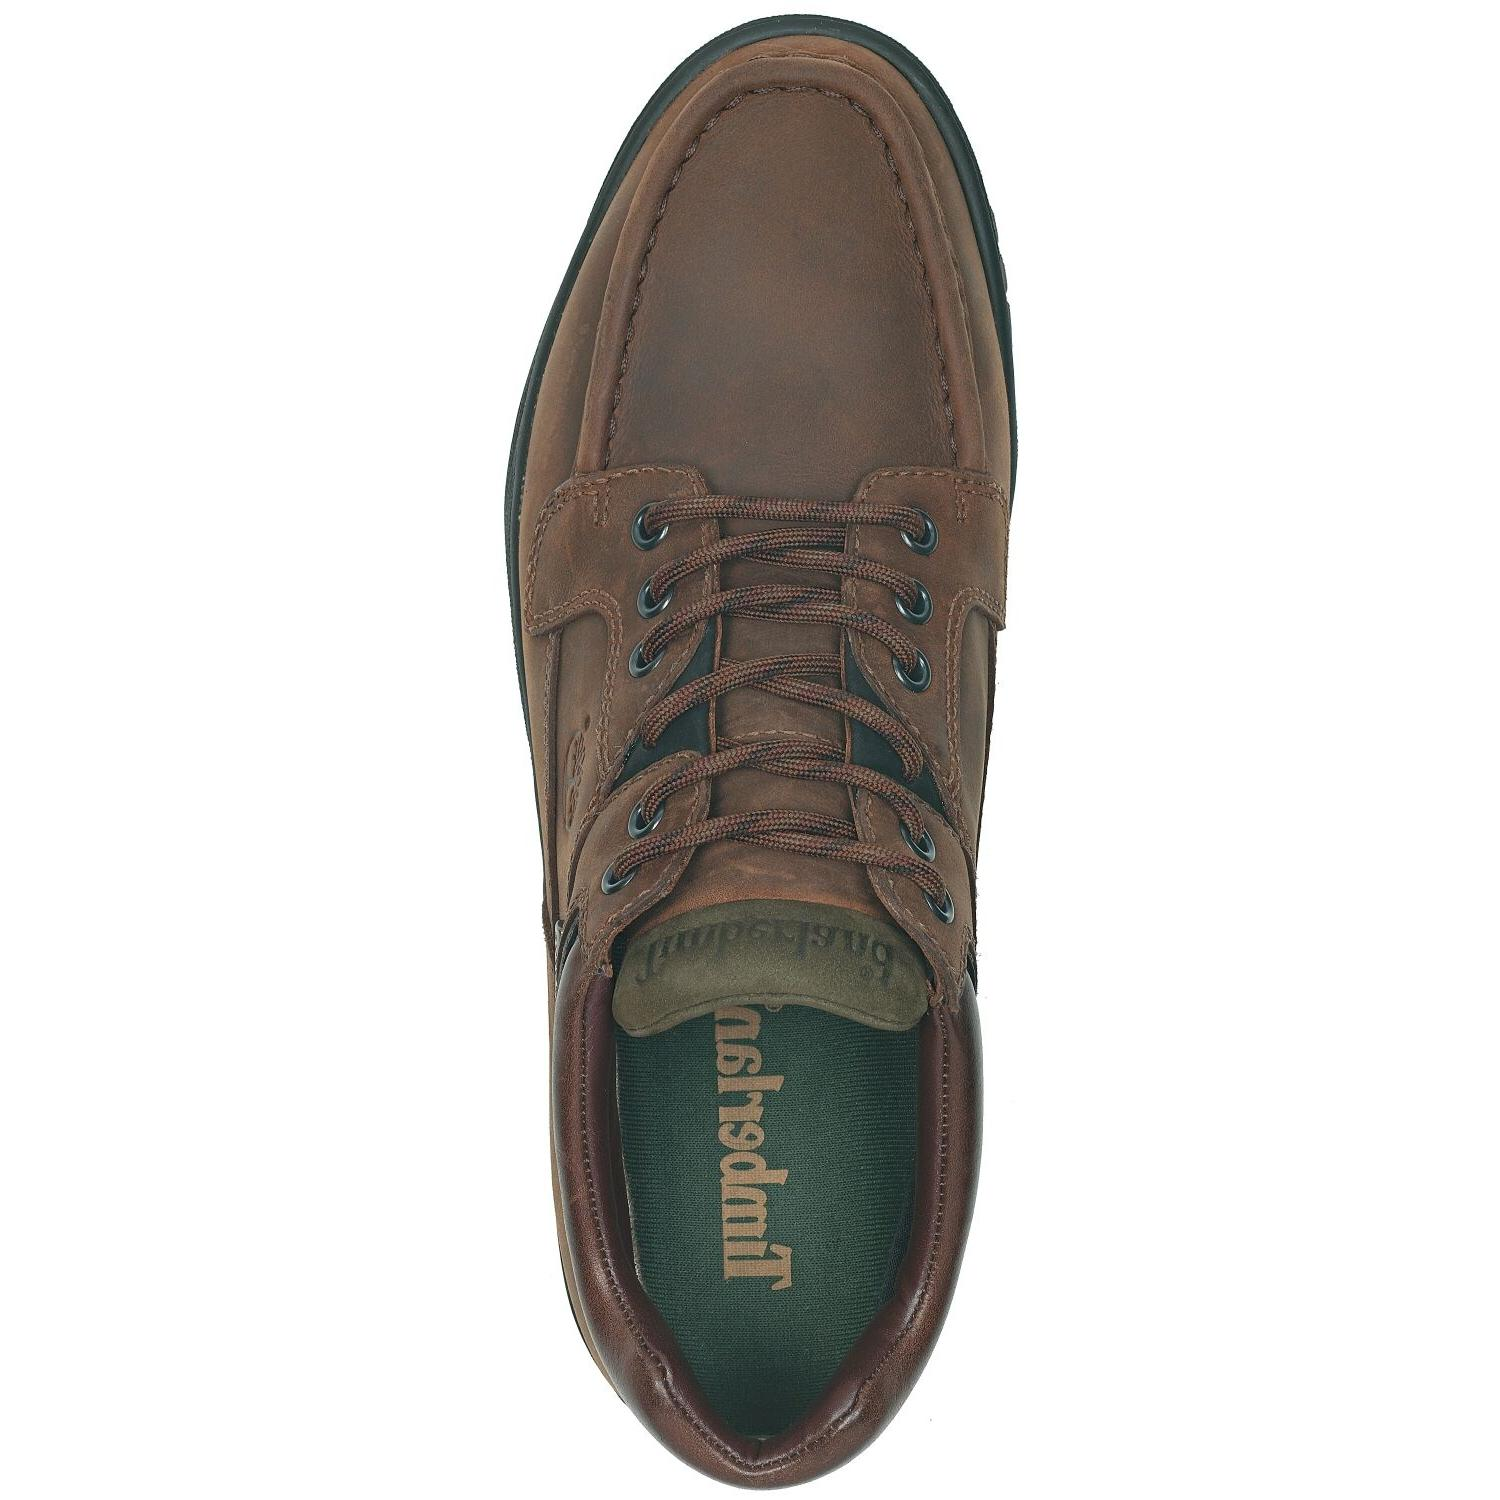 Timberland Gore-Tex Waterproof Leather / Shoes